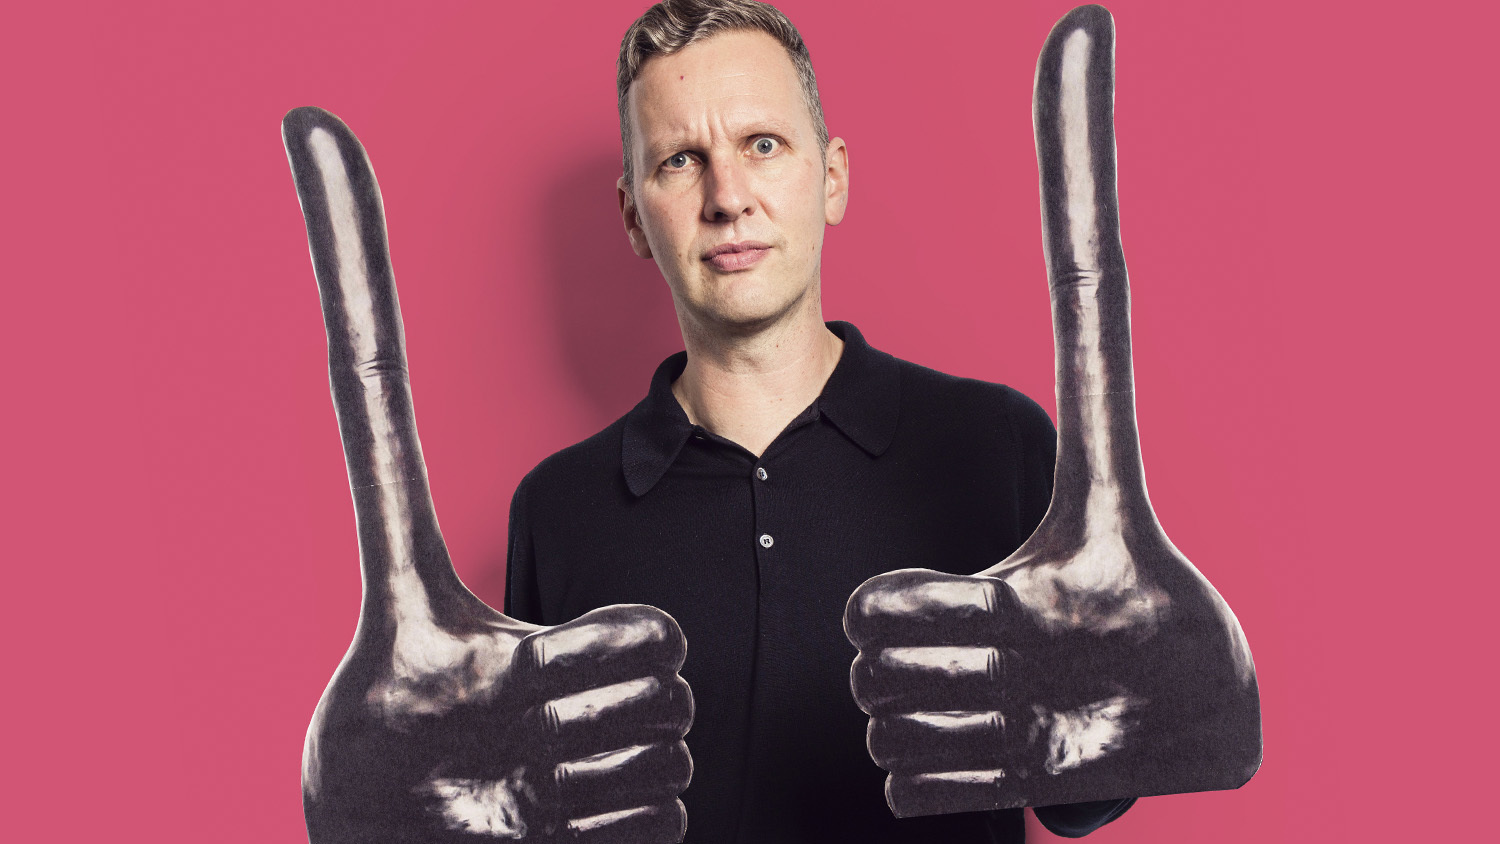 David Shrigley's big thumbs up